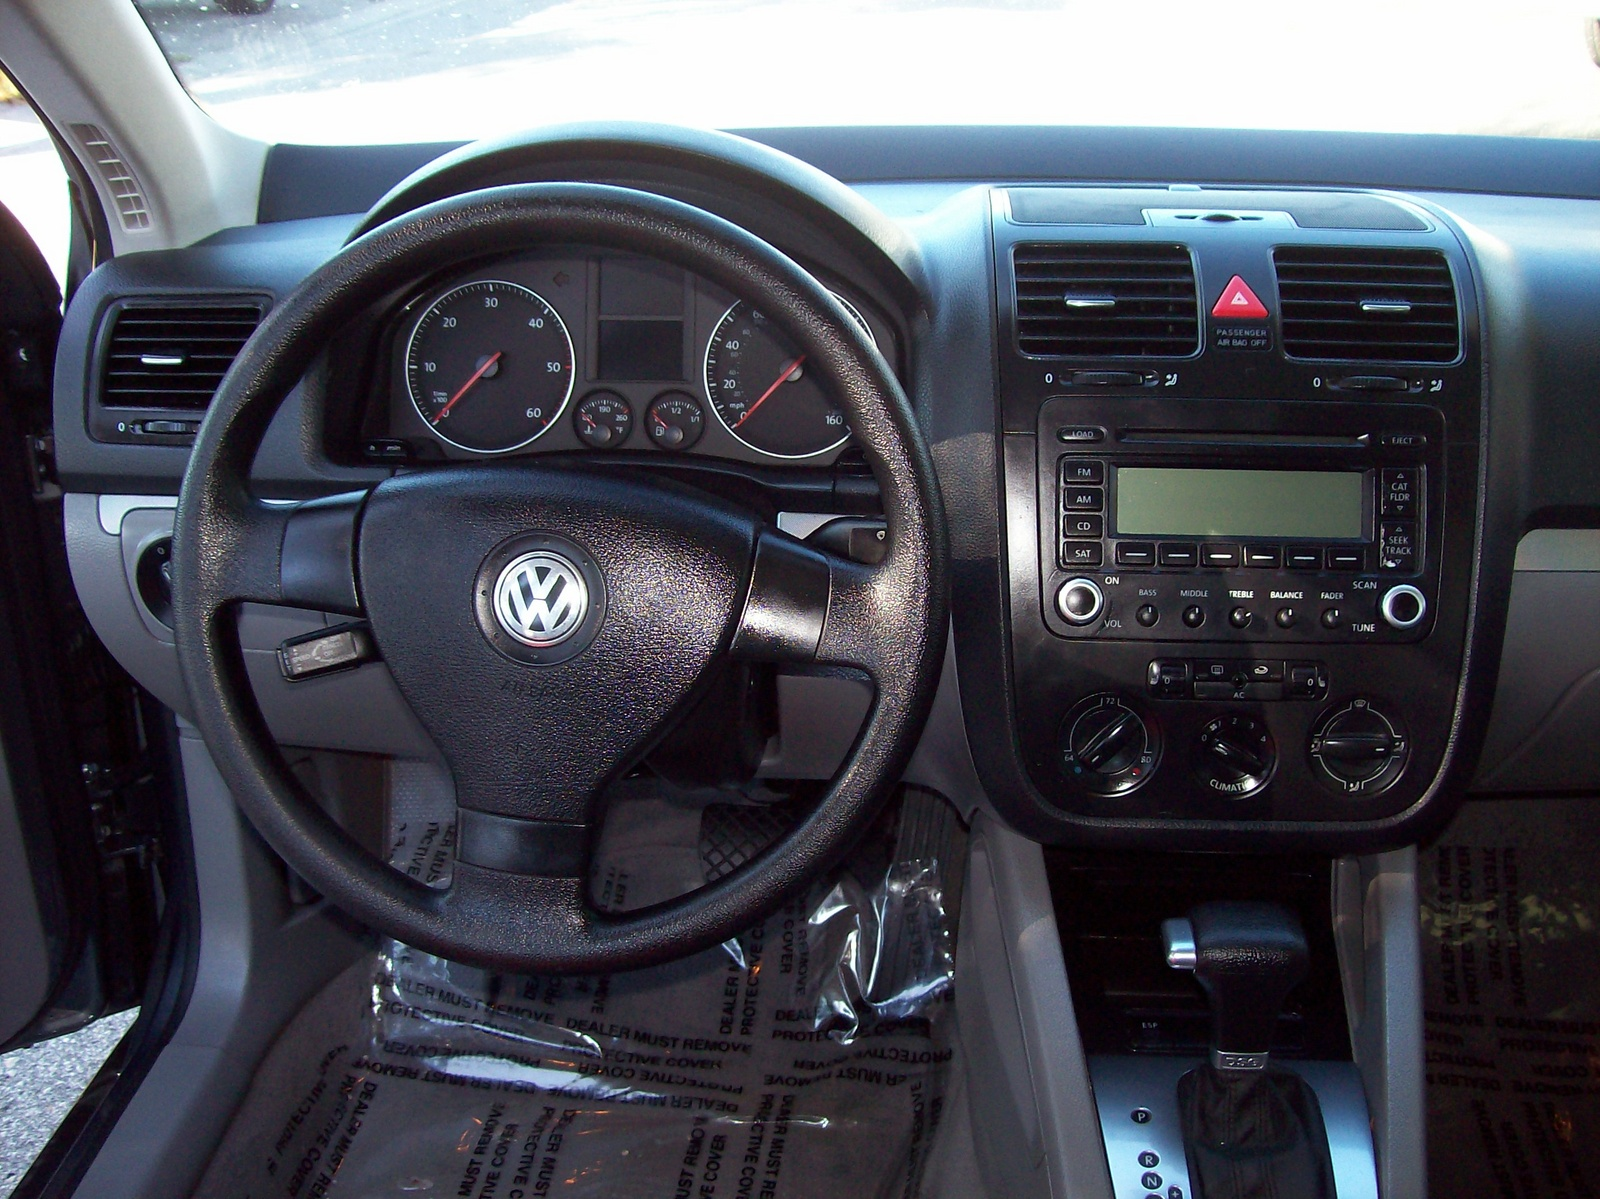 2006 vw jetta interior pictures to pin on pinterest pinsdaddy. Black Bedroom Furniture Sets. Home Design Ideas